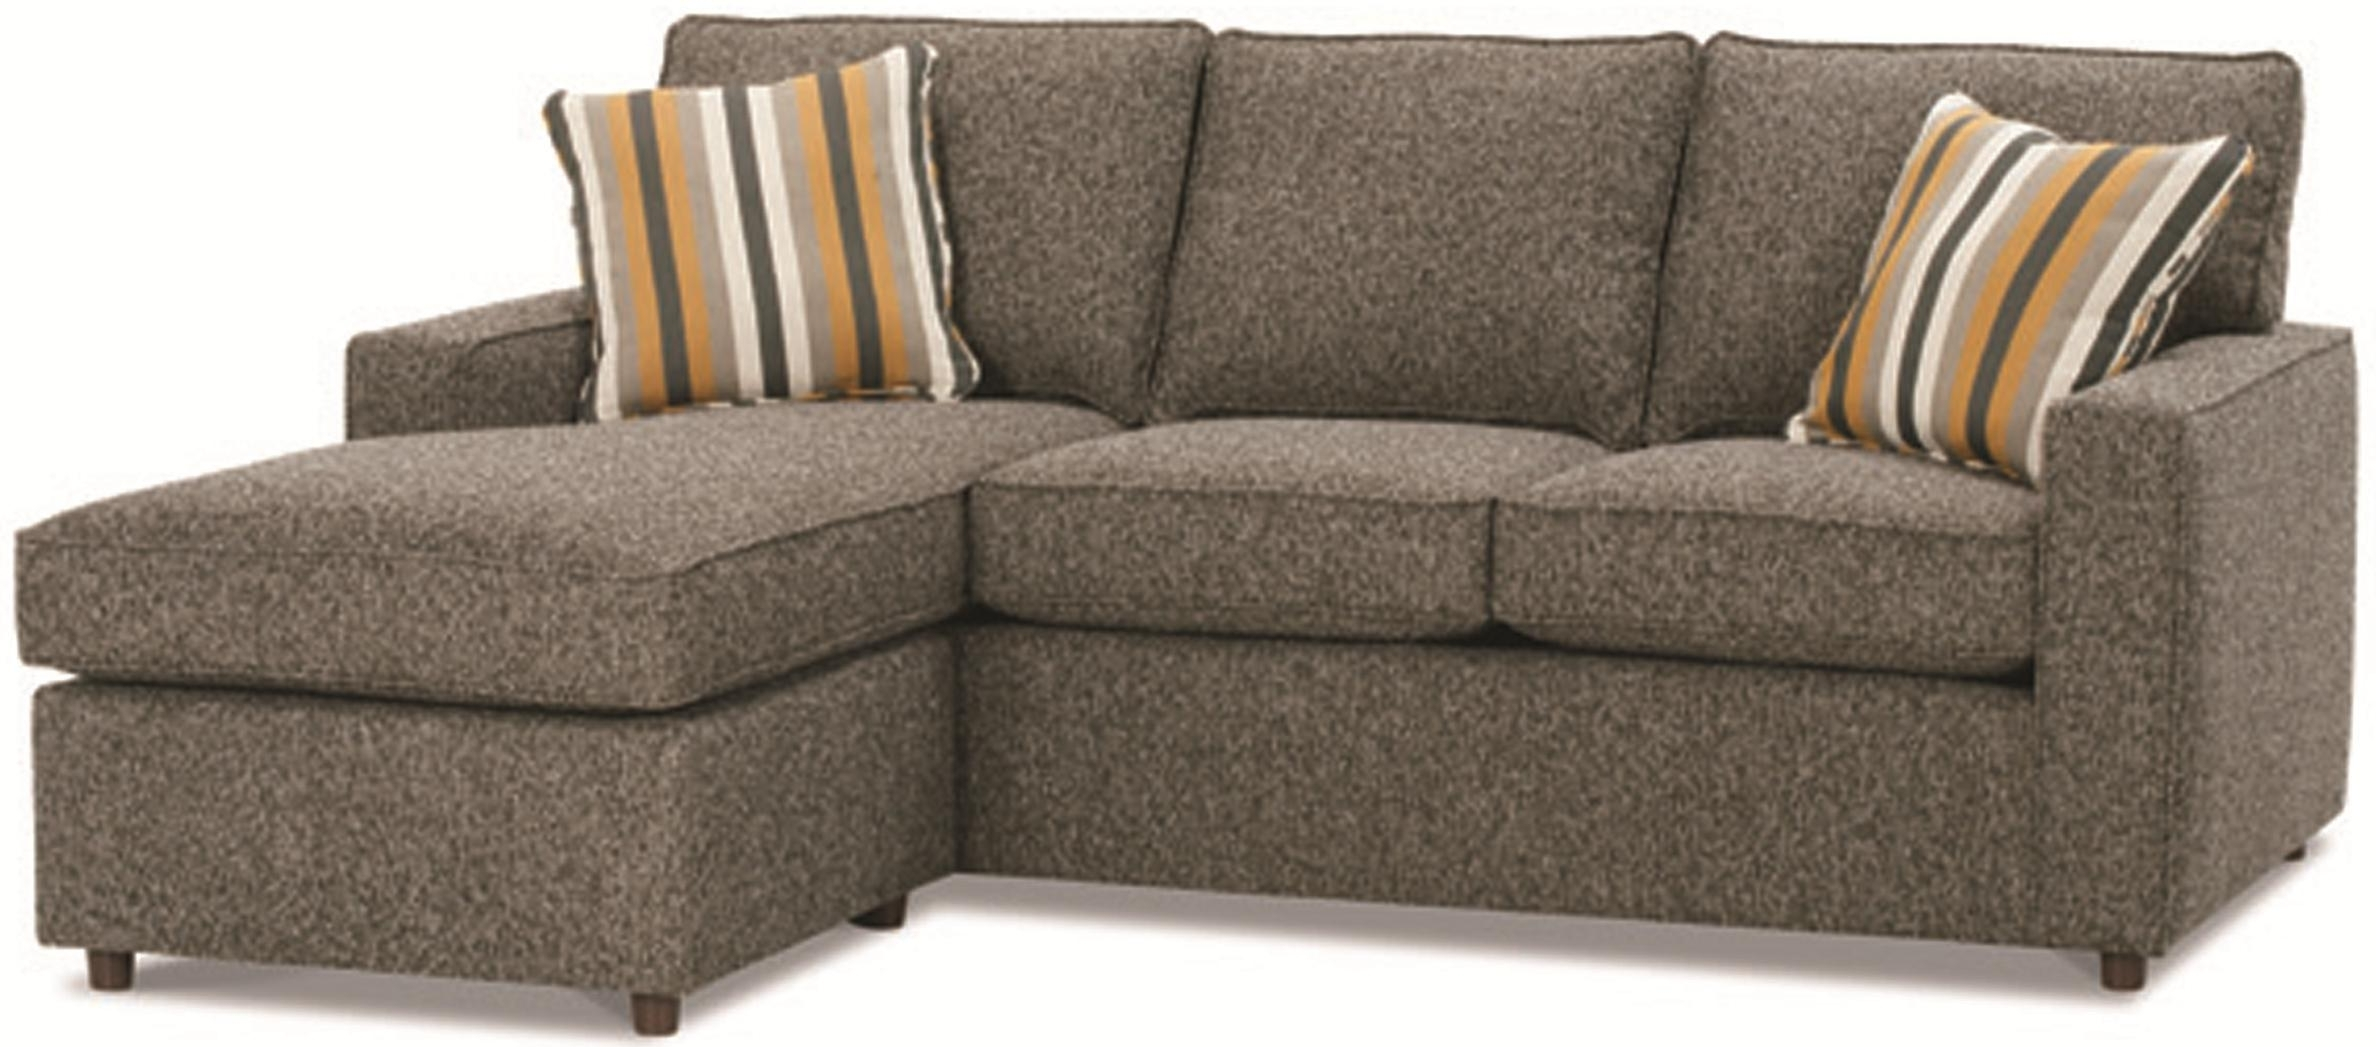 Famous Sofa Chaise Sectionals Inside Small Apartment Size Furniture Apartment Sized Furniture (View 5 of 15)